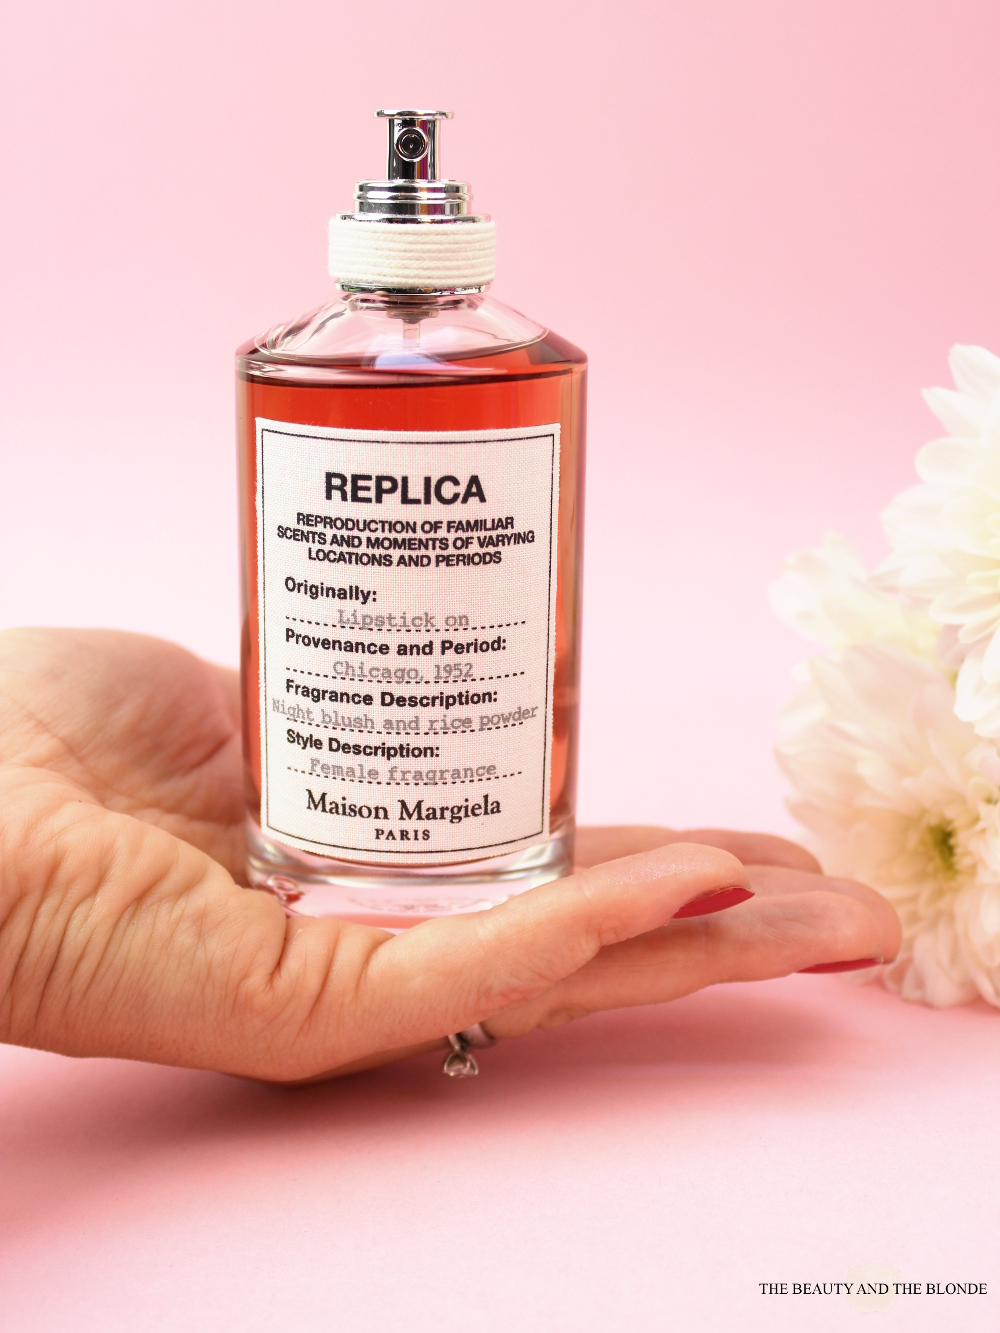 Maison Margiela Replica Lipstick On Parfum Duft Fragrance Review